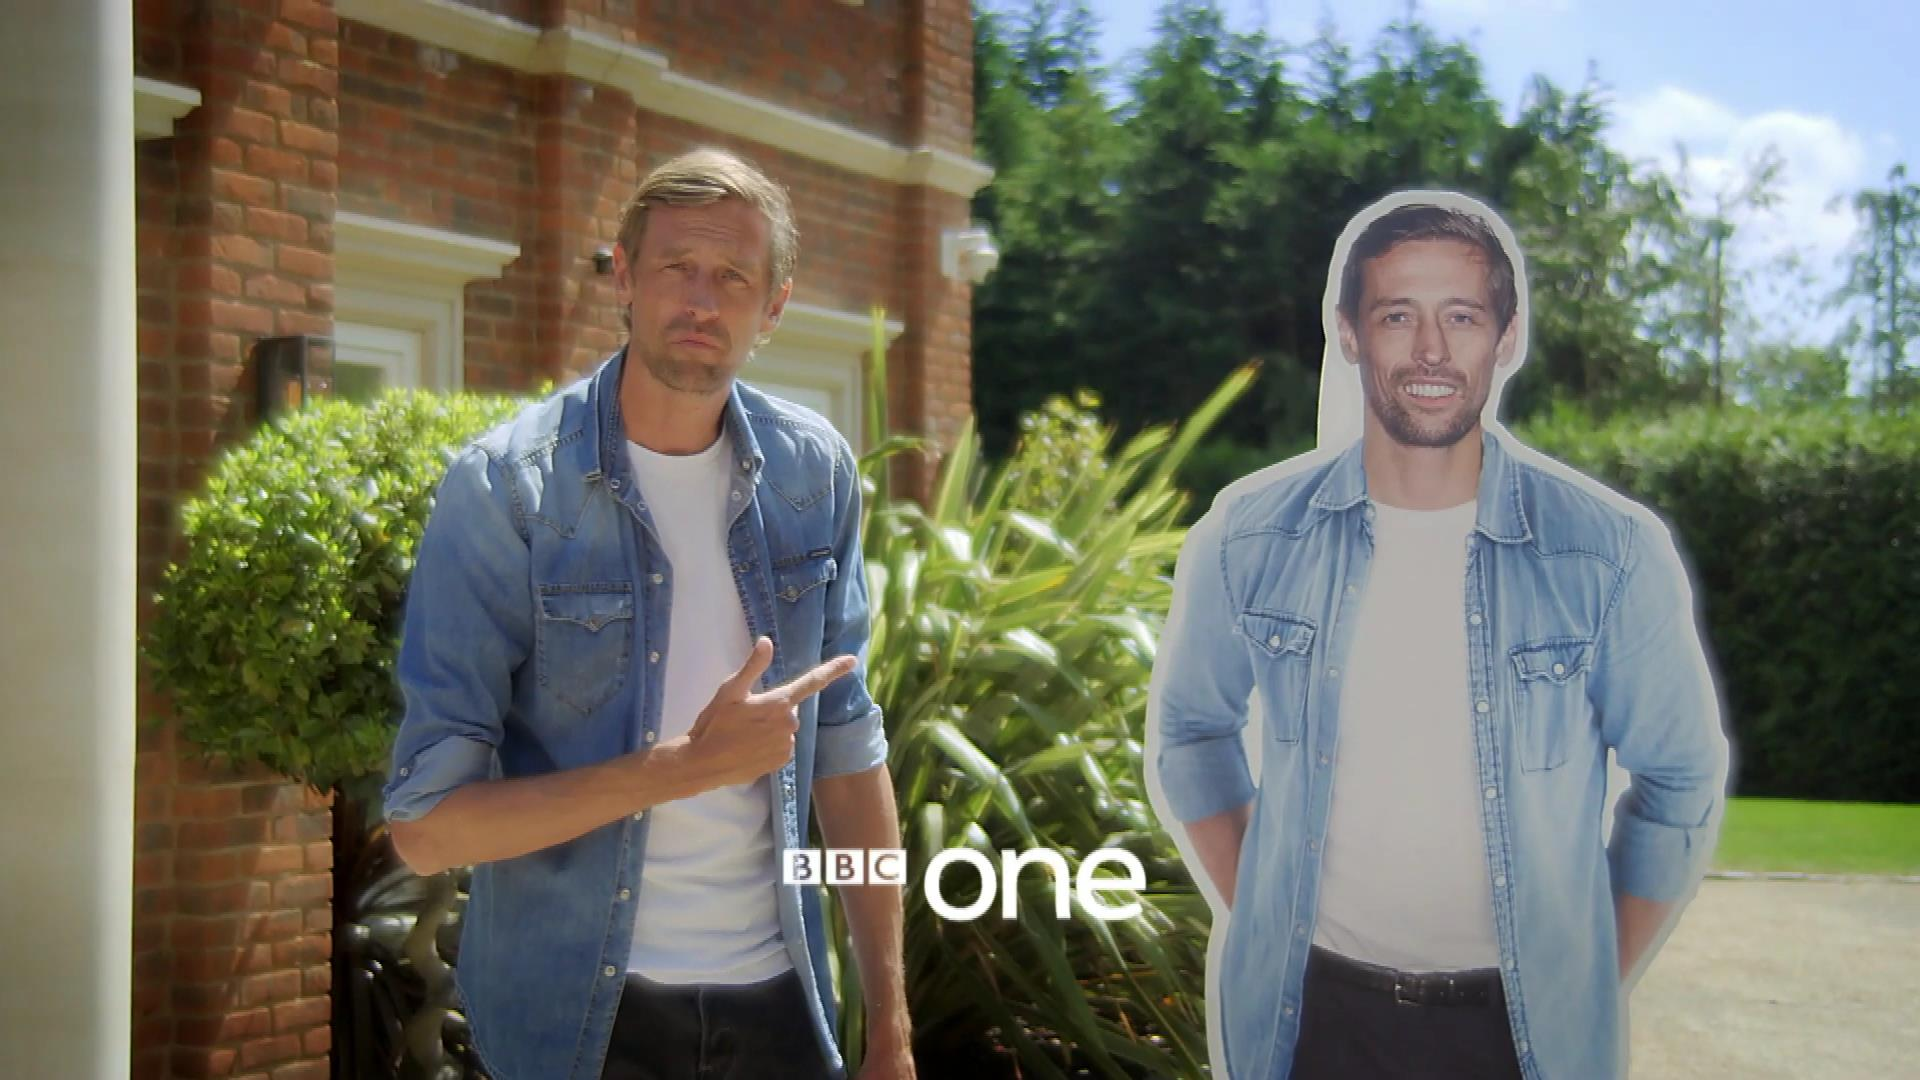 Peter Crouch: Save Our Summer Cardboard Cutout